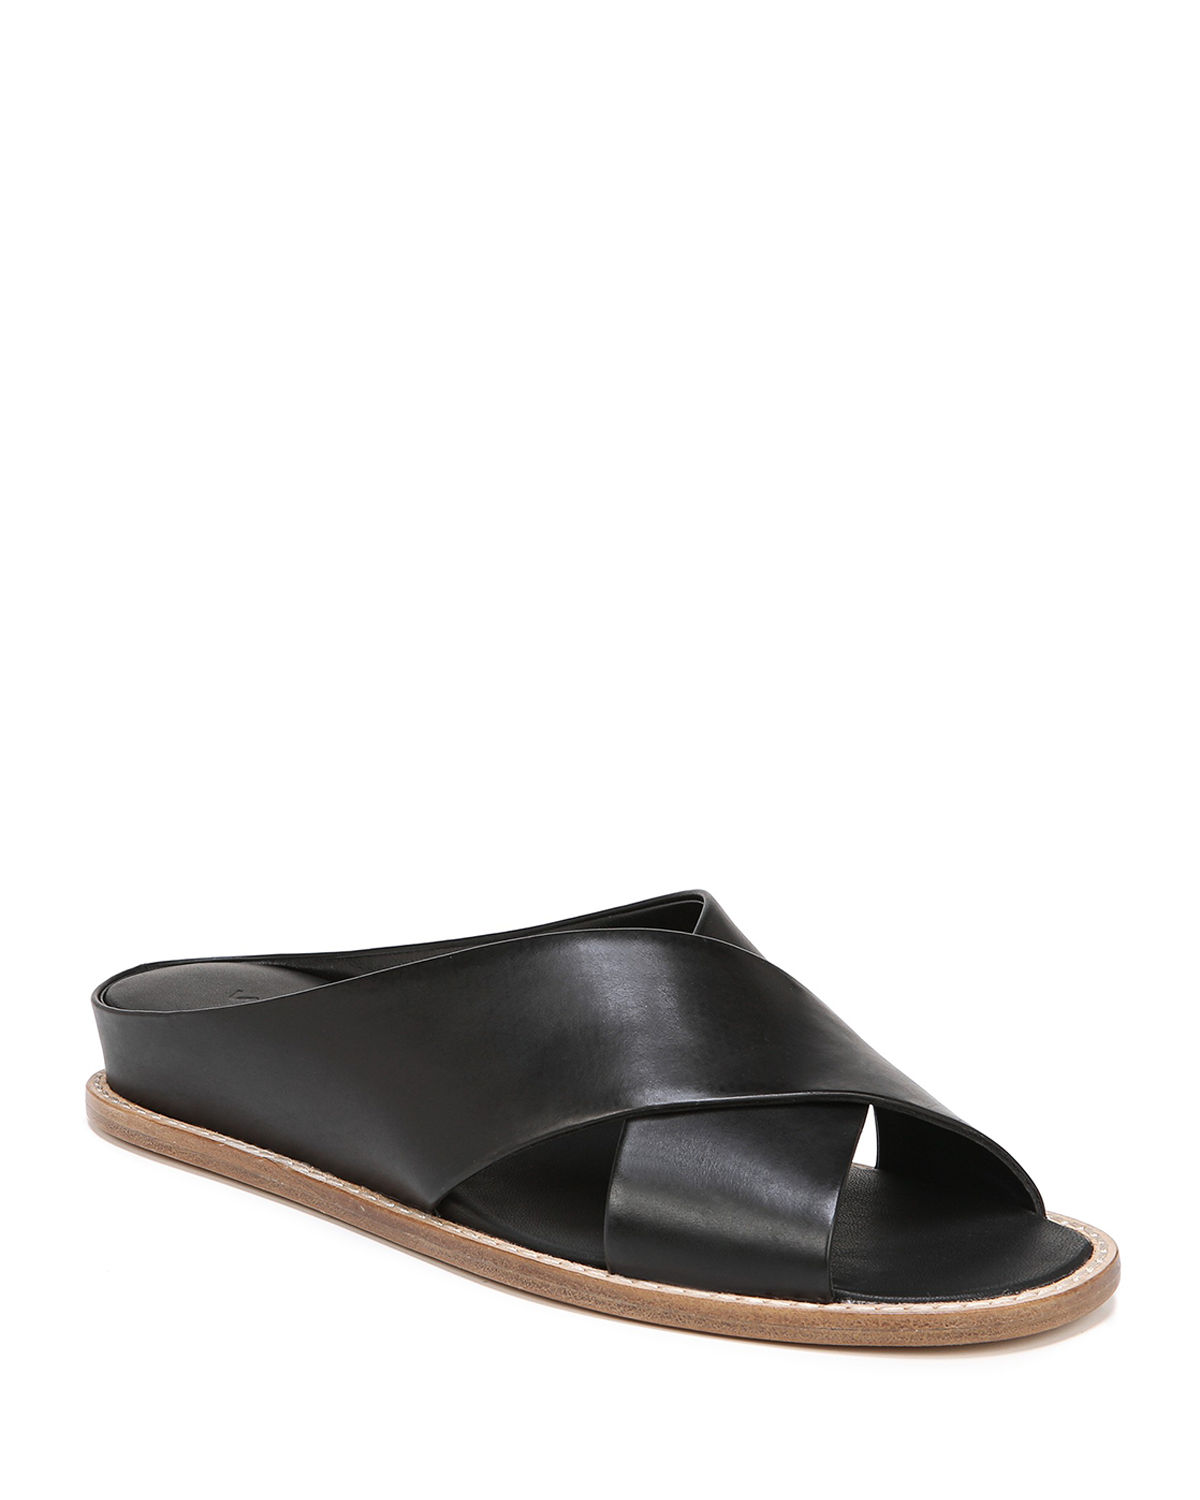 Vince Sandals FAIRLEY LEATHER WEDGE SANDALS